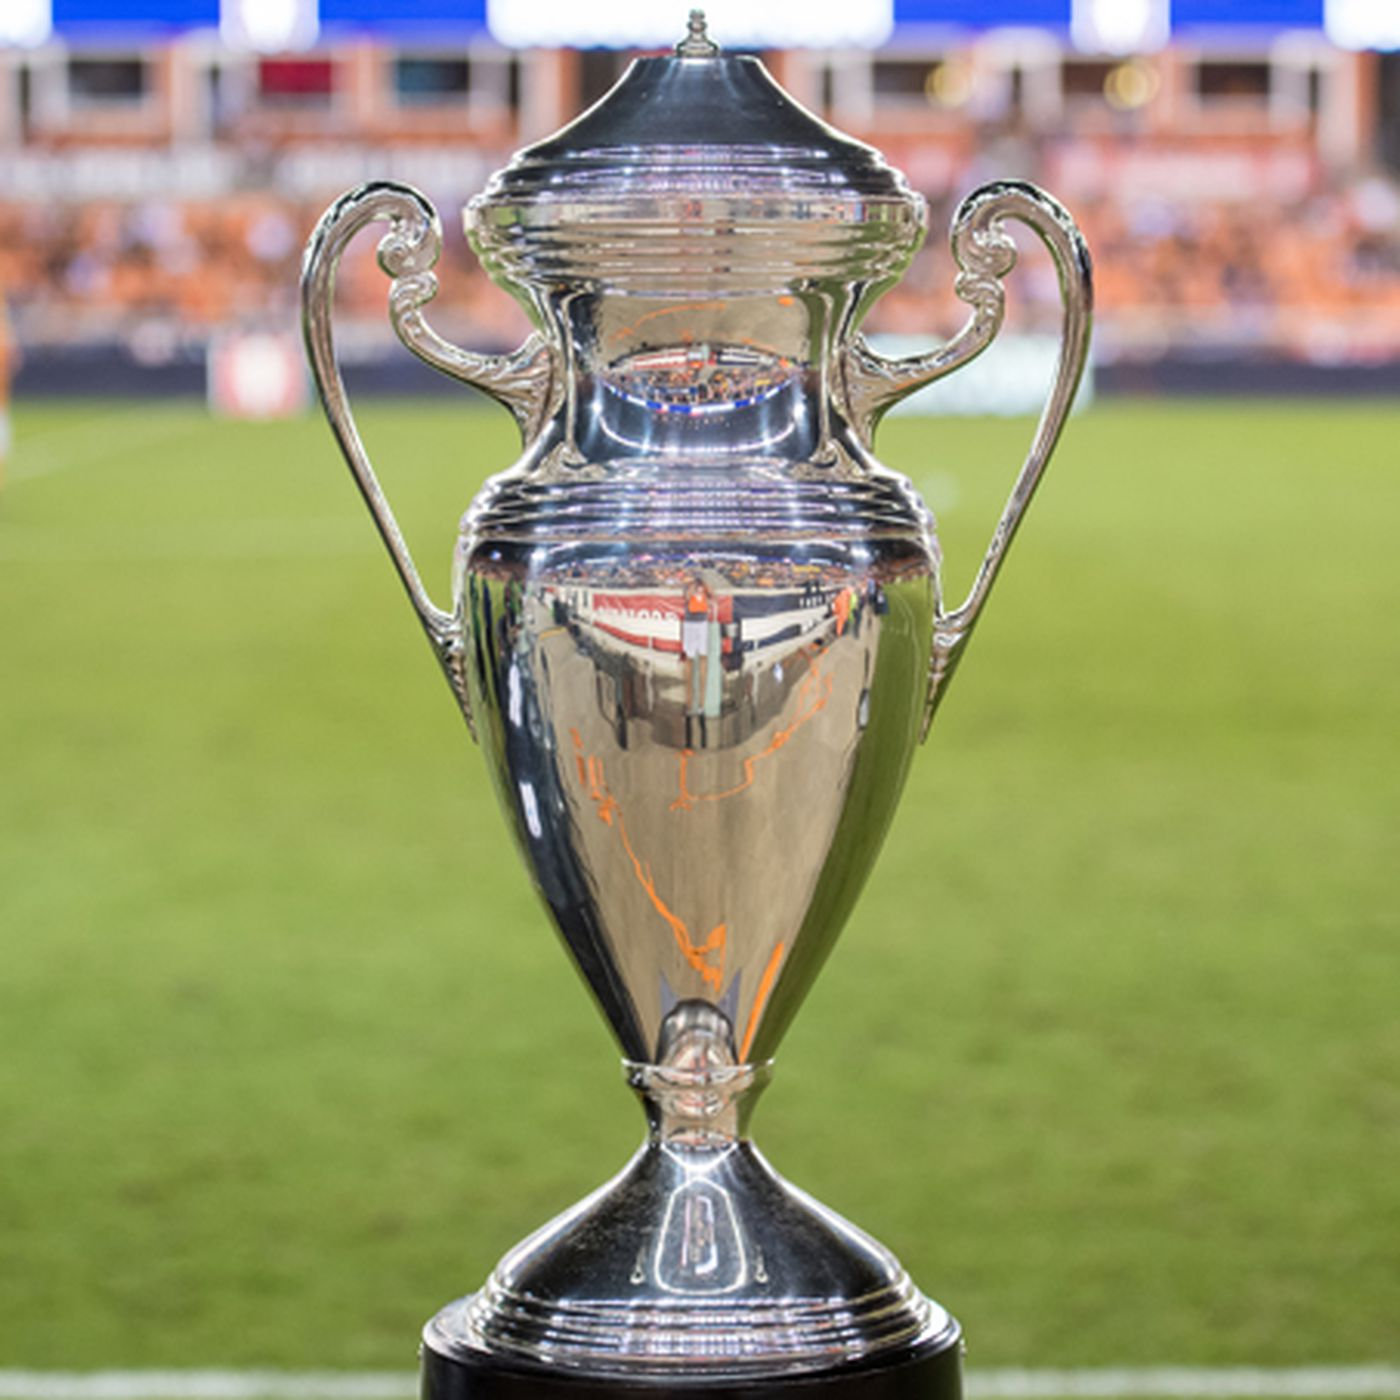 Brotherly Game Daily Links: 2021 U.S. Open Cup tournament canceled - Brotherly Game